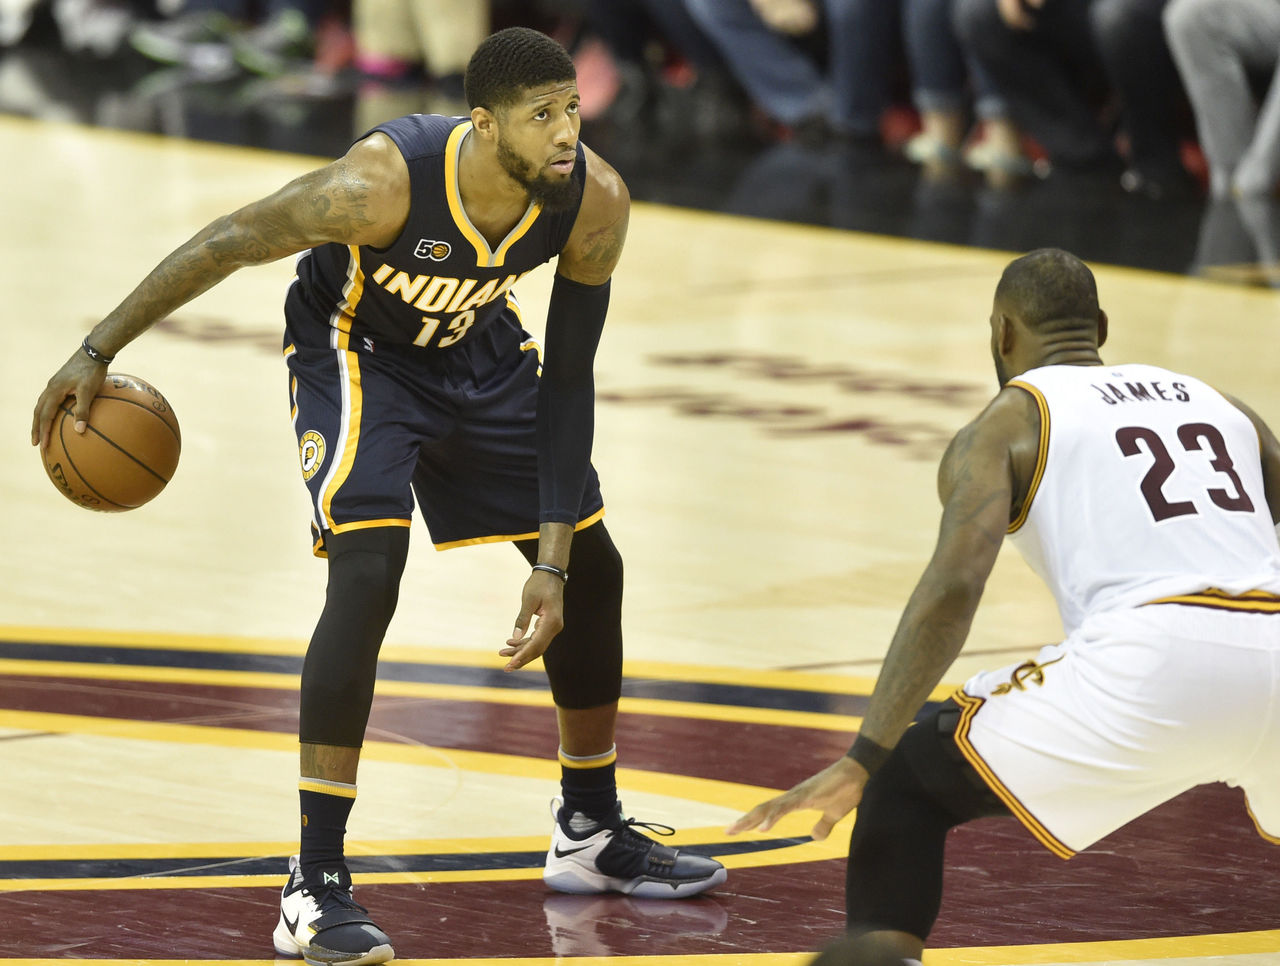 Cropped 2017 04 03t015928z 1050613022 nocid rtrmadp 3 nba indiana pacers at cleveland cavaliers